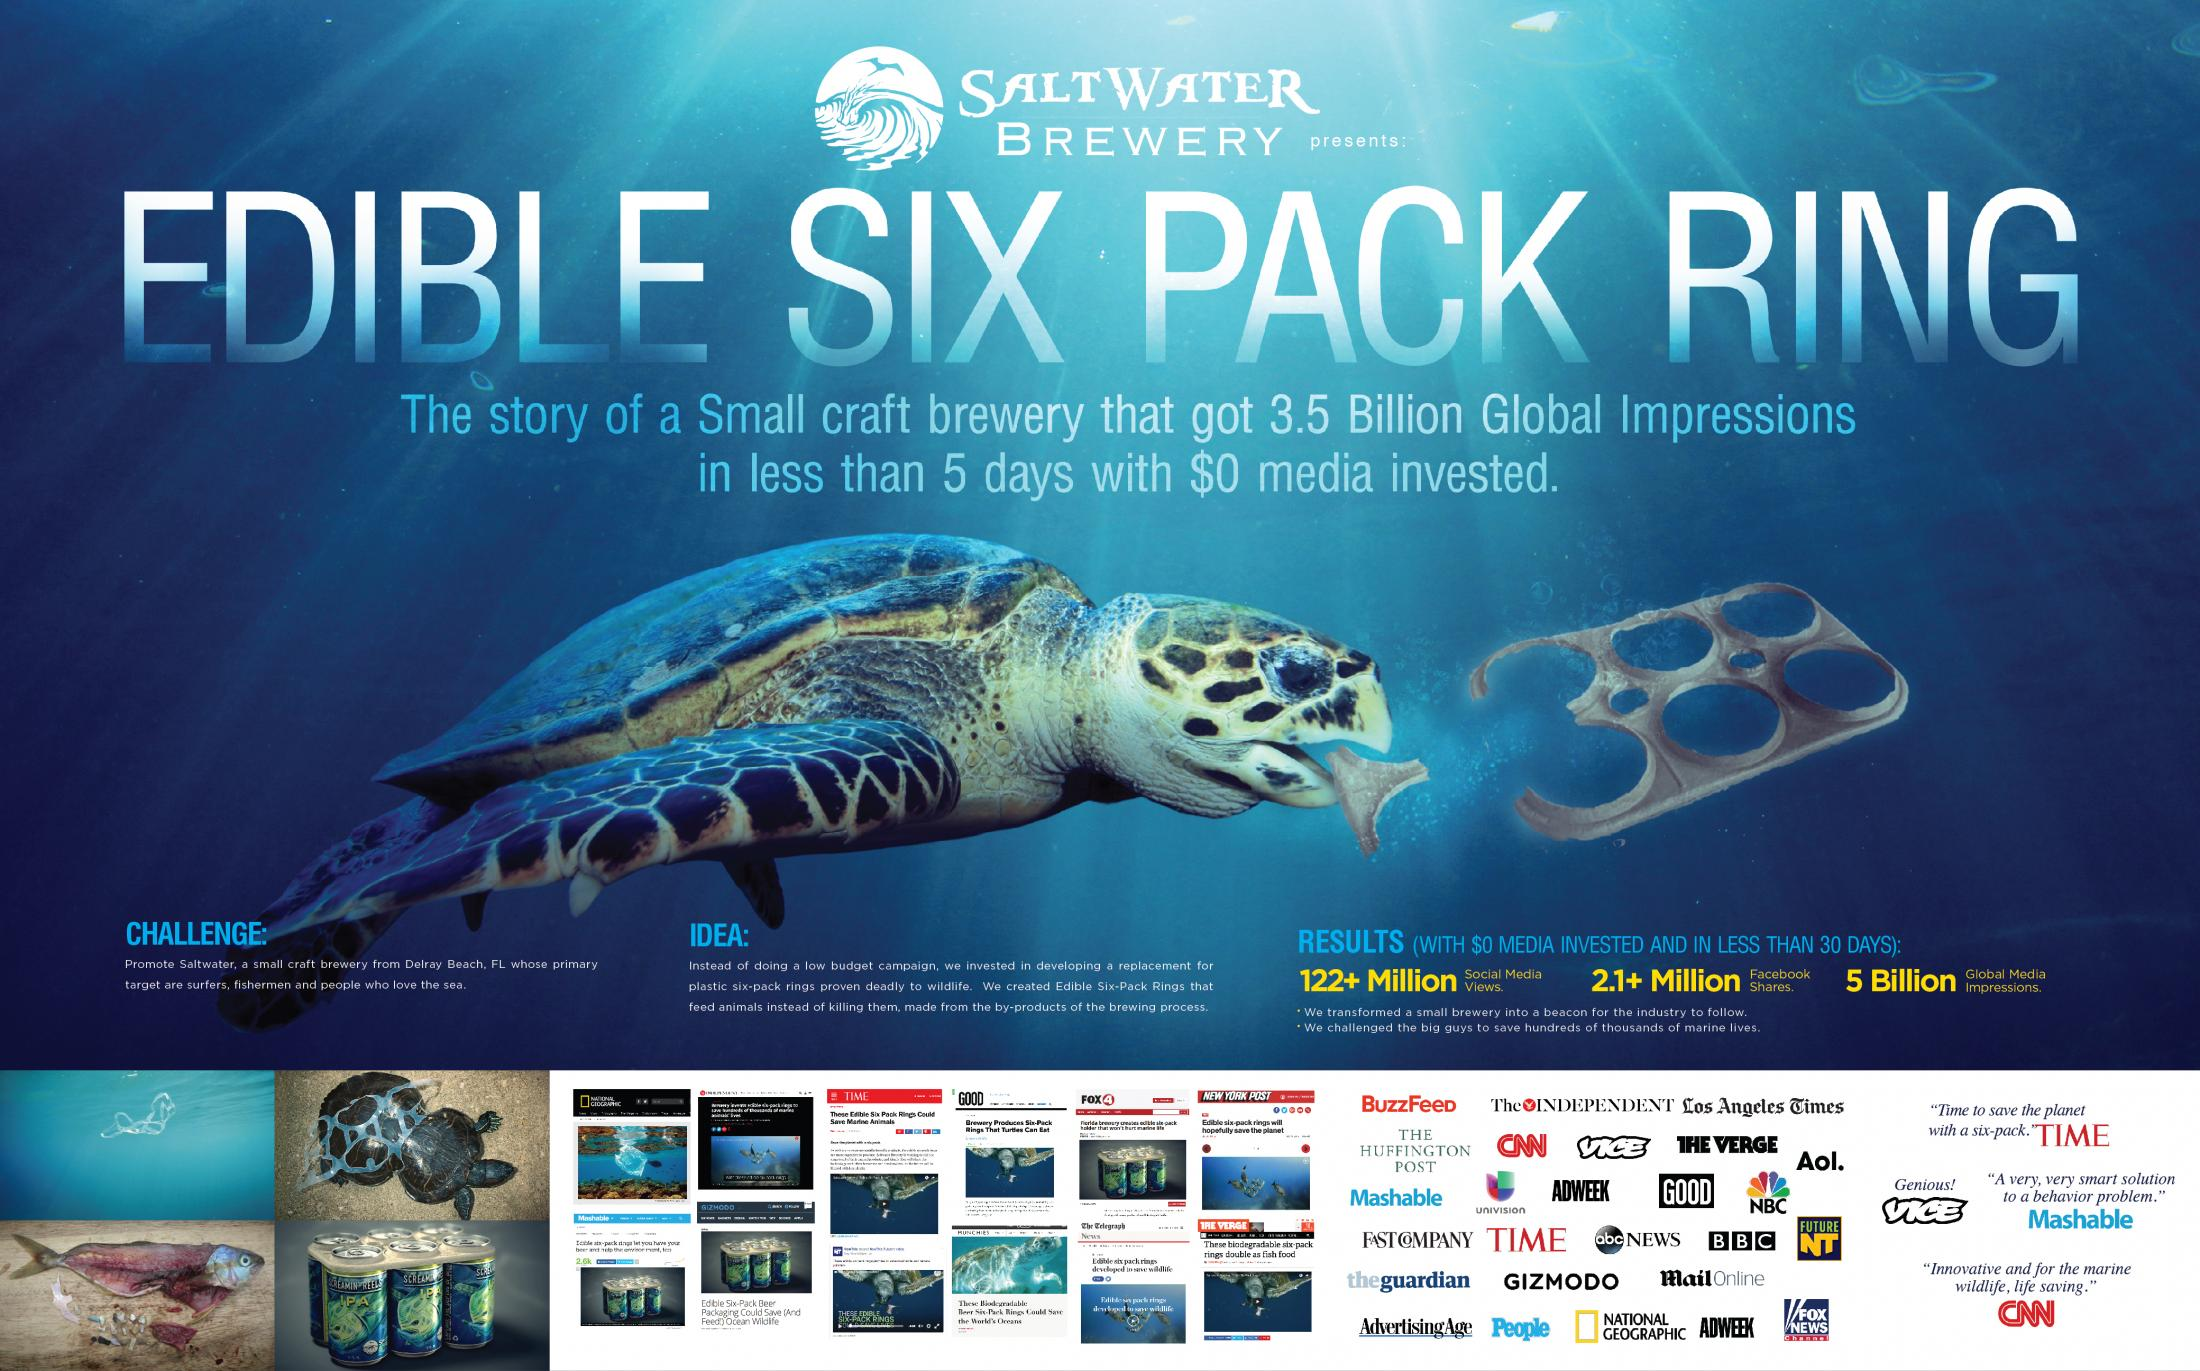 http://www.adeevee.com/2016/10/saltwater-brewery-edible-six-pack-rings-direct-marketing-design/